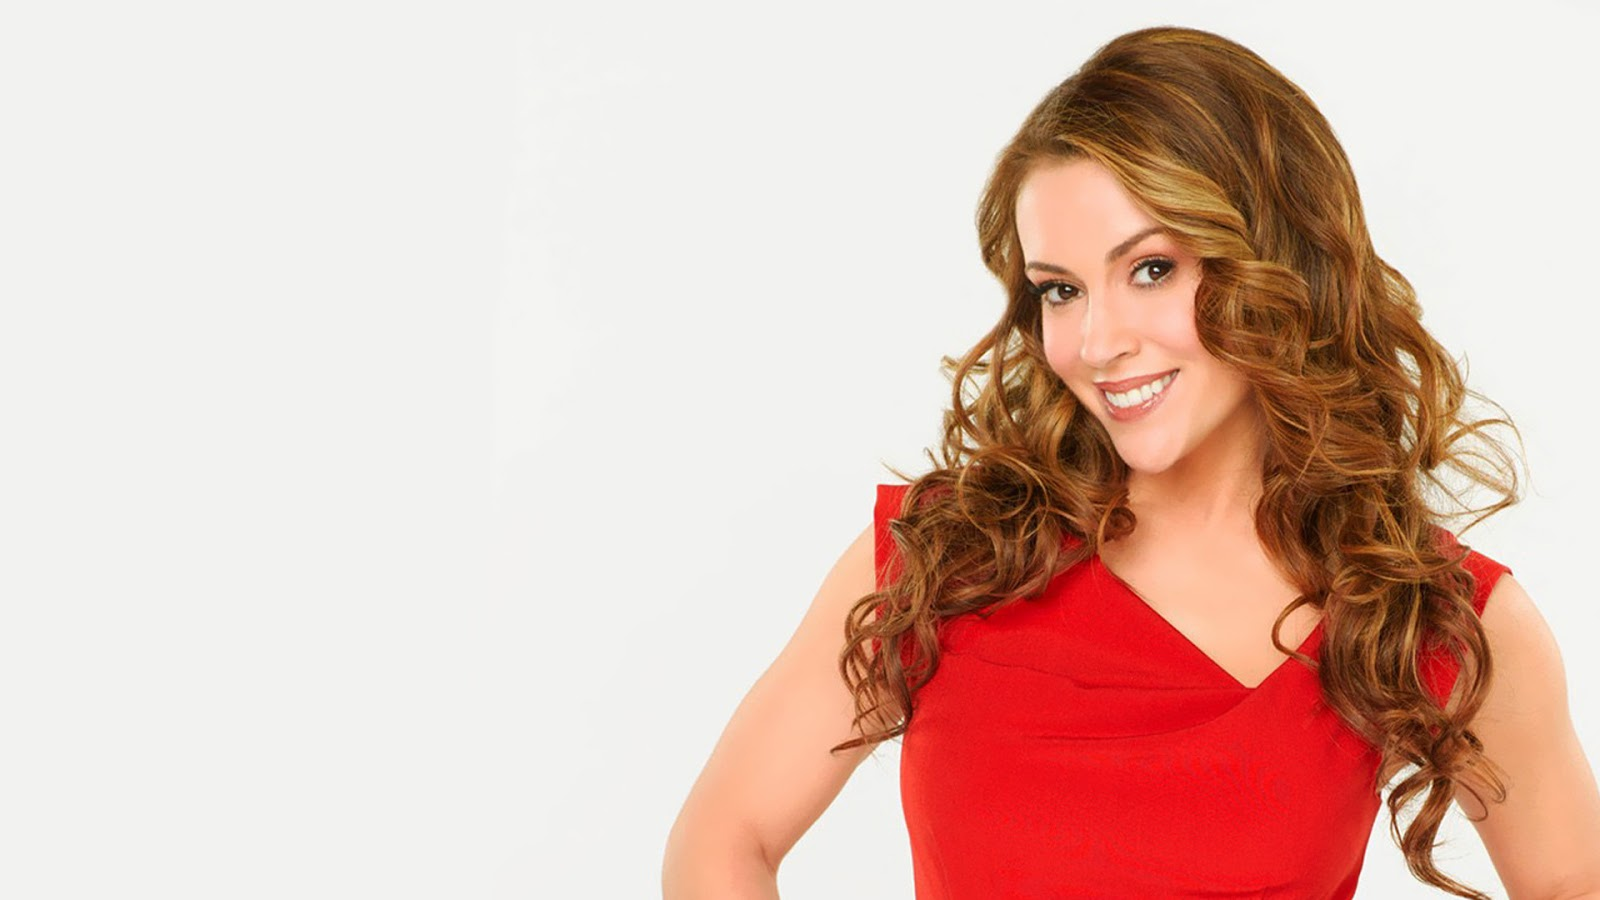 top 10 latest alyssa milano hd wallpapers images and